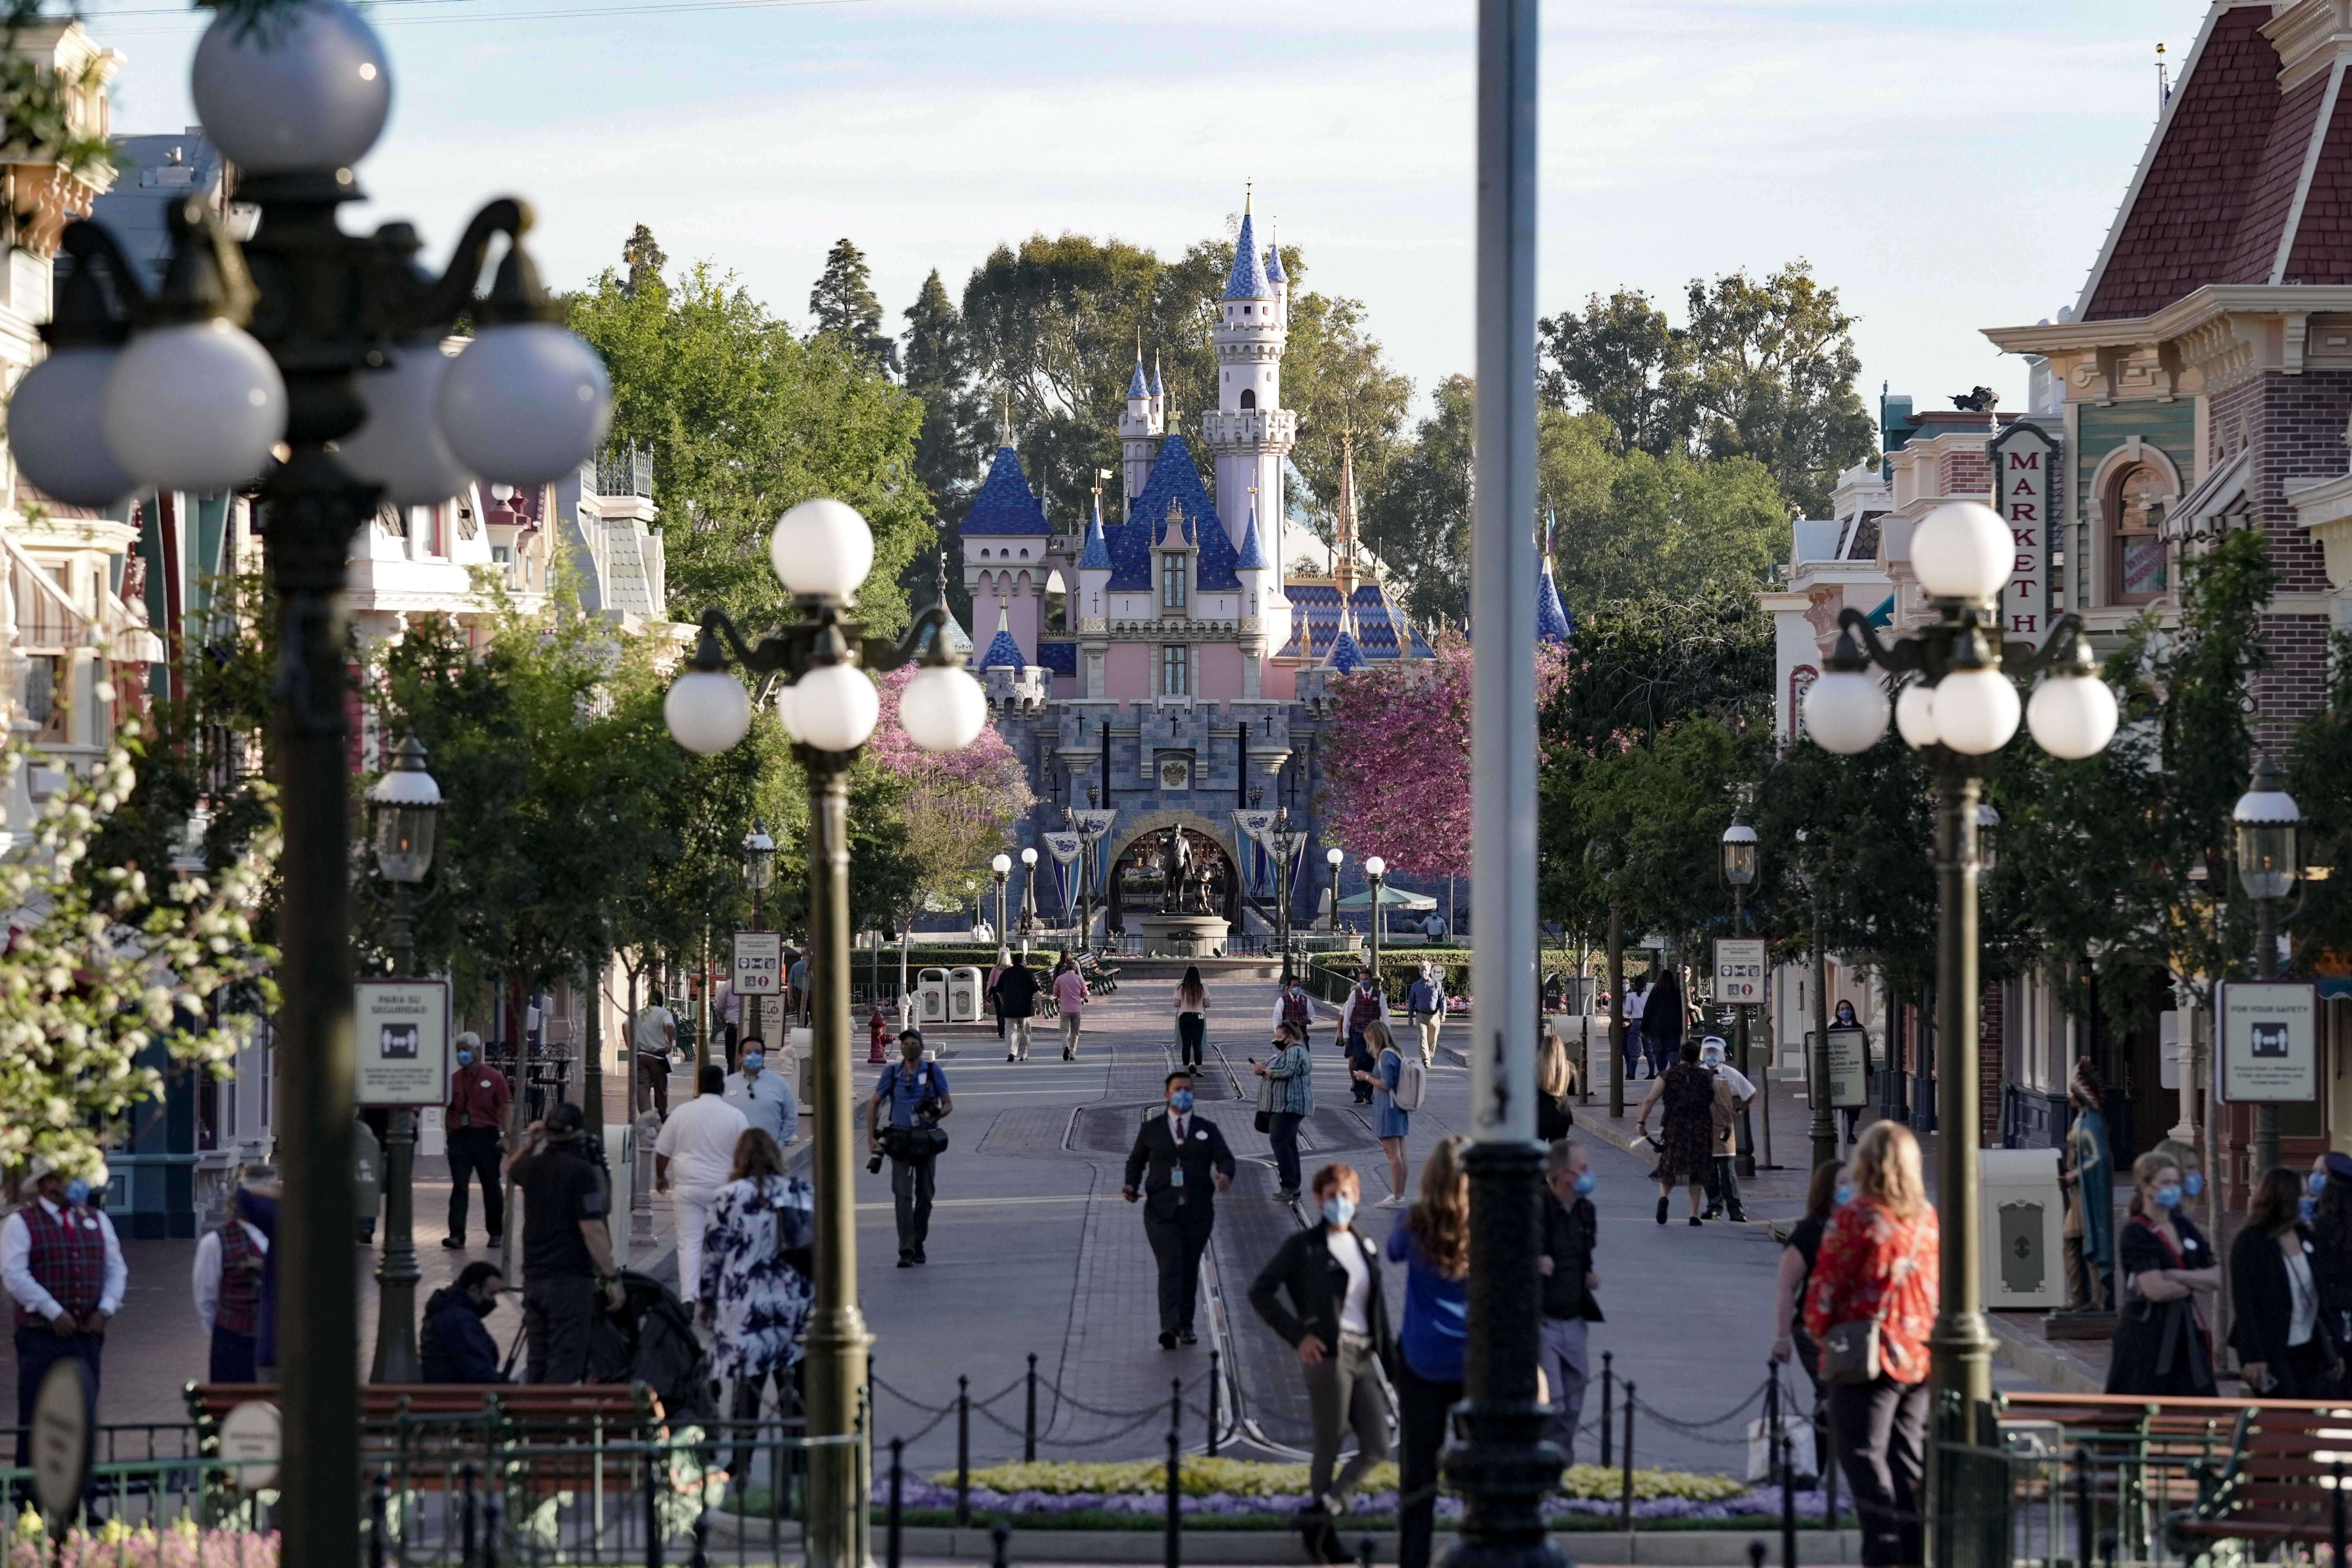 Disneyland reopens after more than a year being closed: See photos